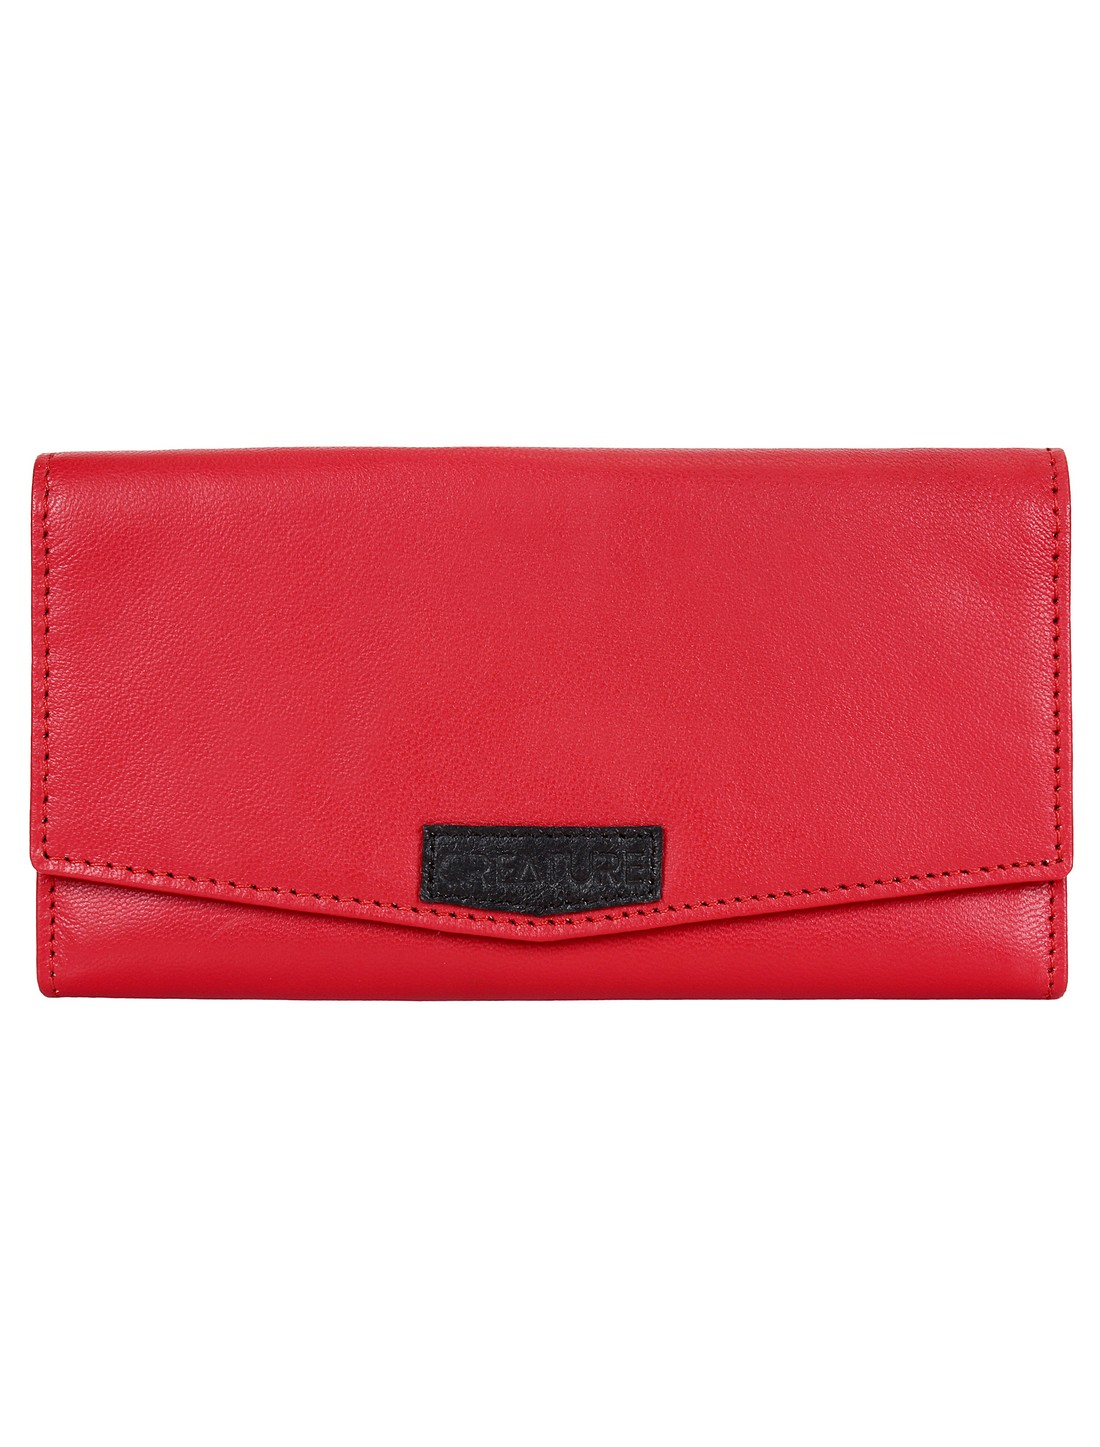 CREATURE | CREATURE Red Stylish Genuine Leather Clutch for Women